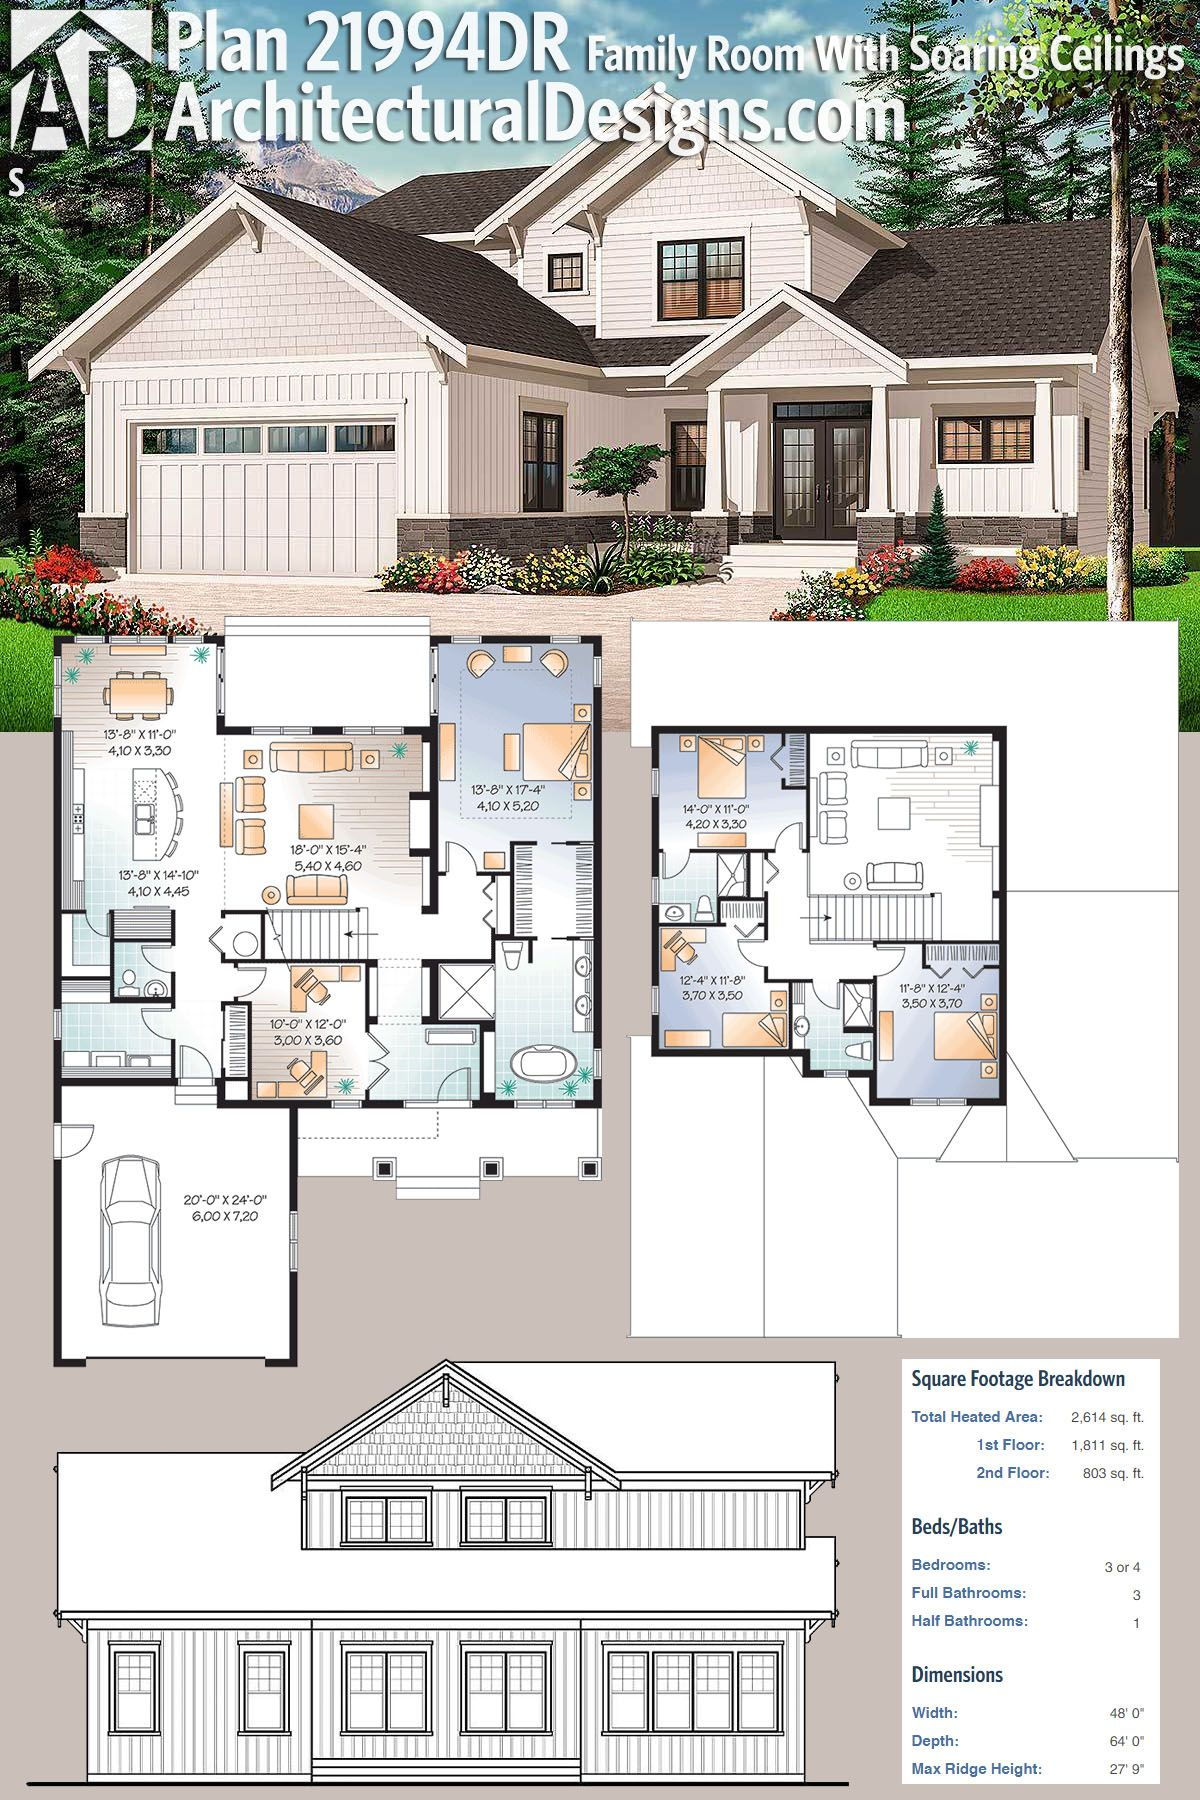 Plan 21994dr New American Home Plan With Soaring Family Roomceilings Architectural Design House Plans Sims House Plans House Blueprints